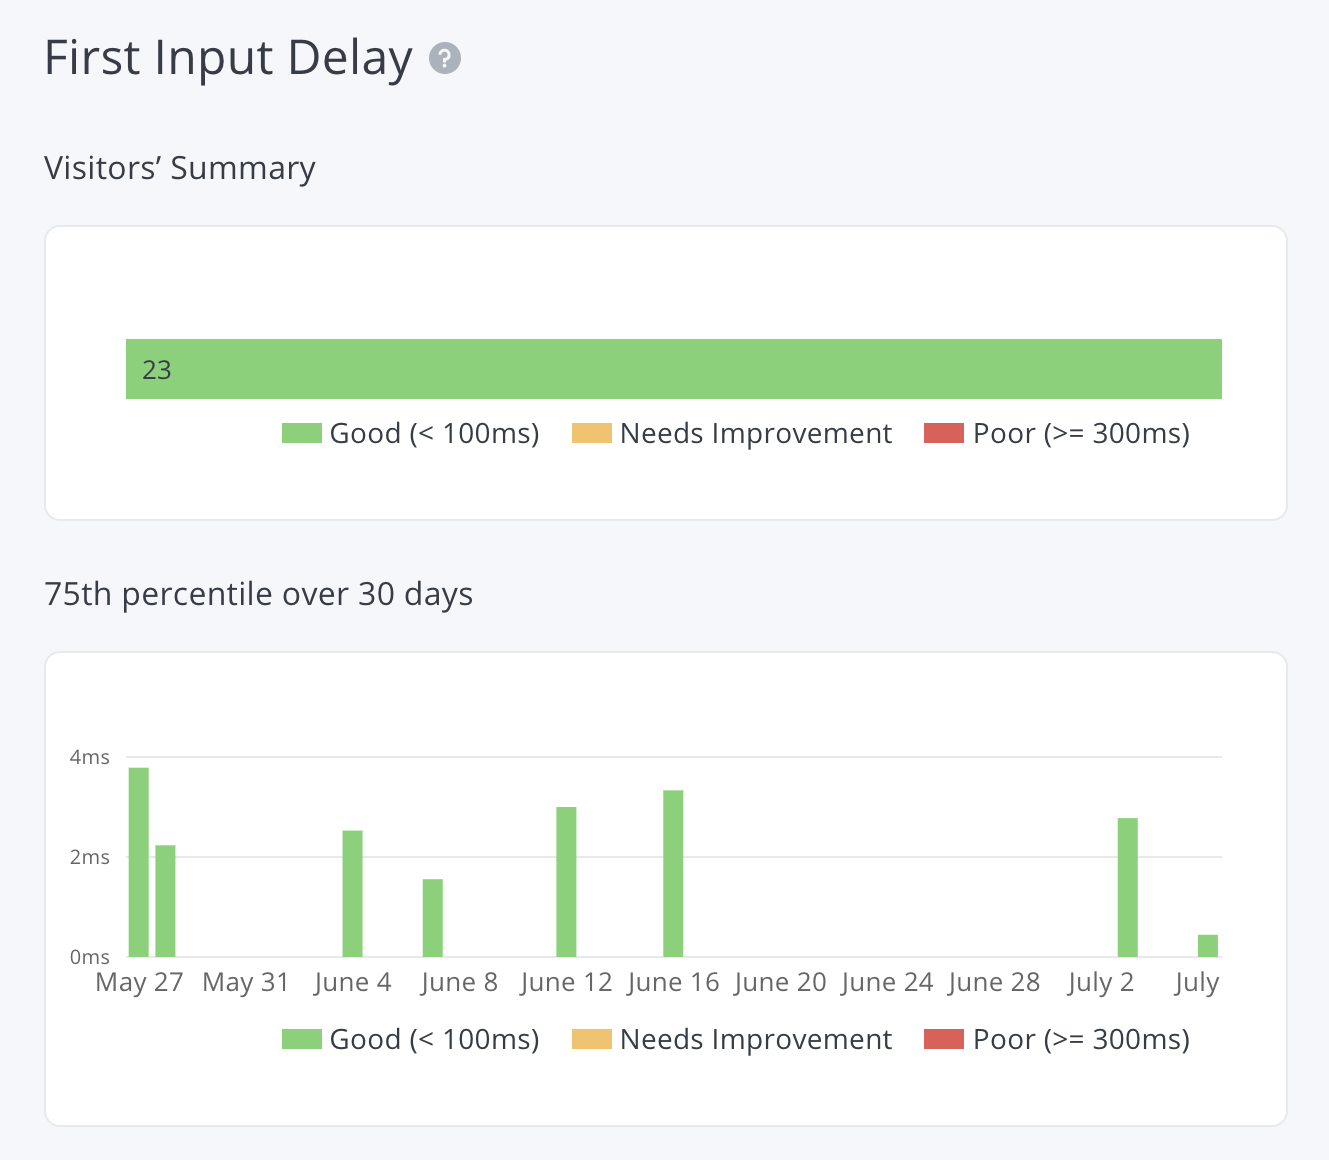 First Input Delay chart